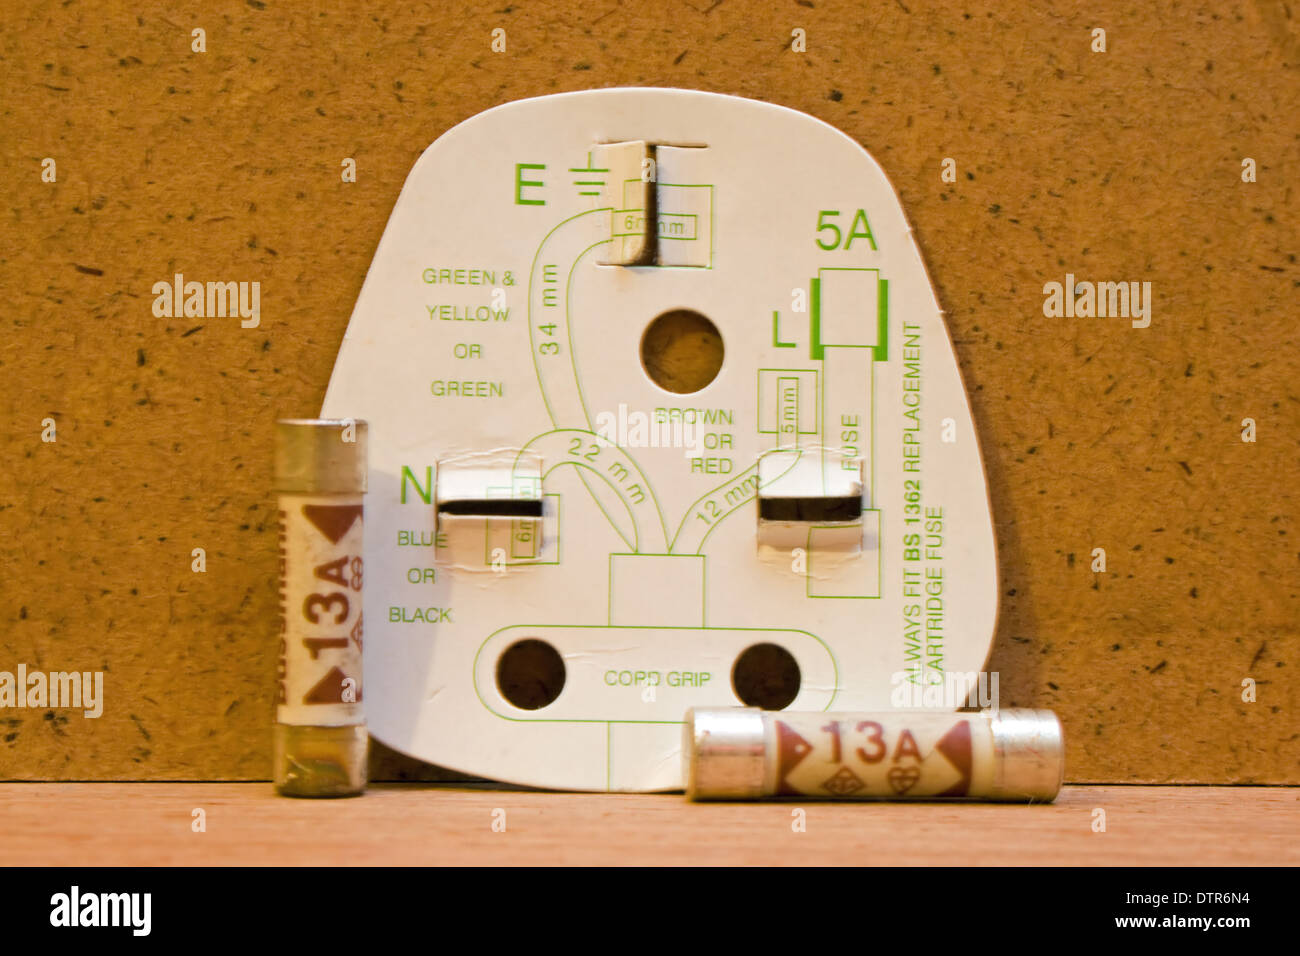 Wiring Split Outlet Free Download Wiring Diagrams Pictures Wiring